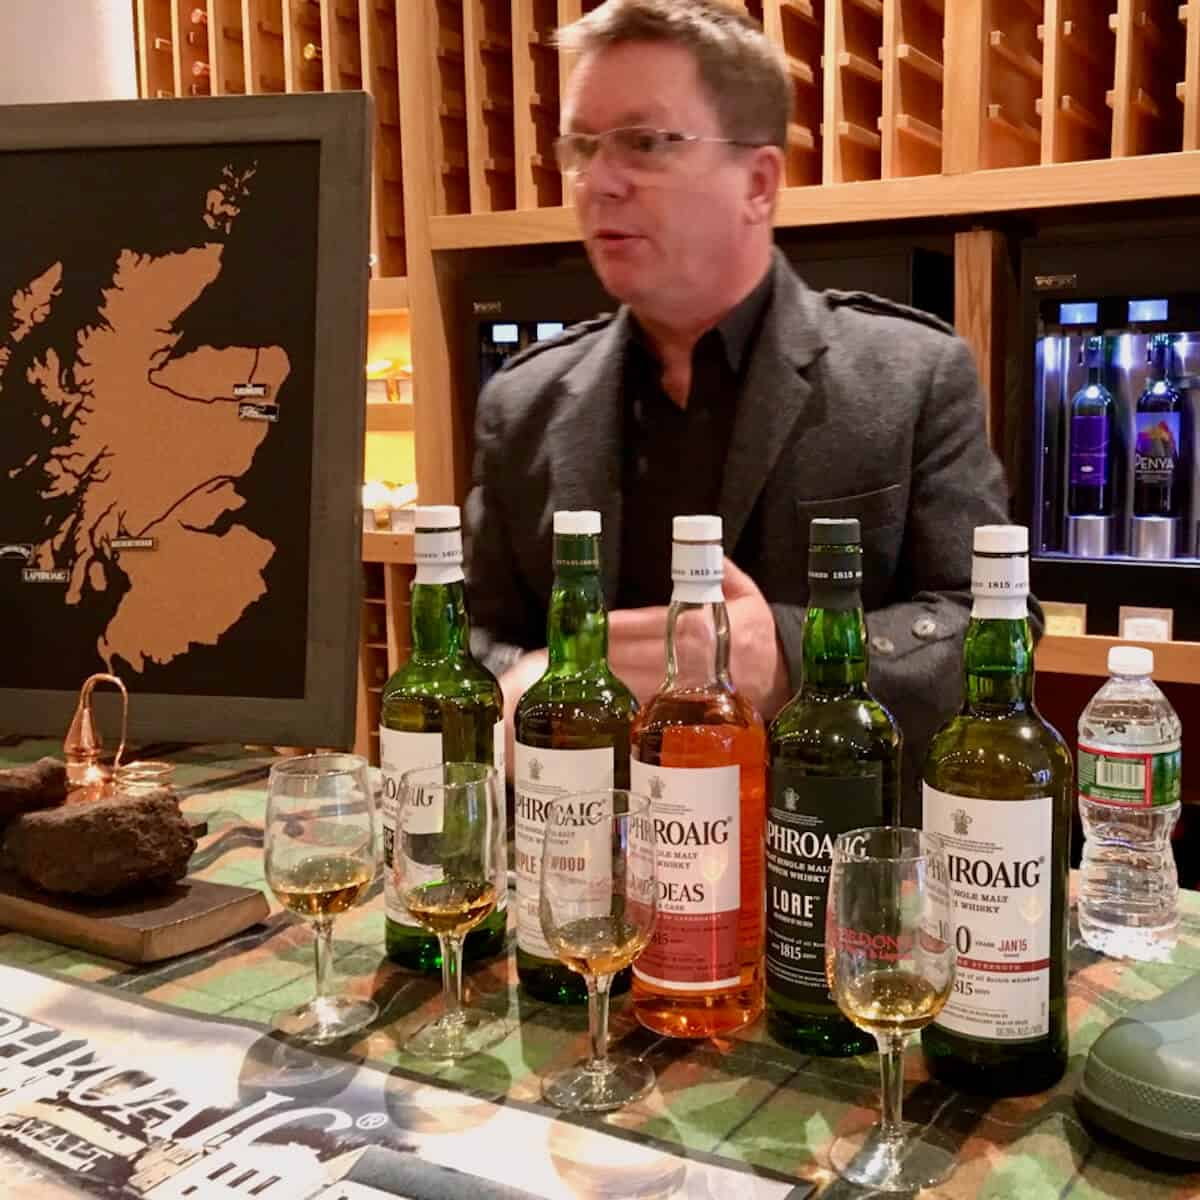 Simon Brooking behind the Laphroaig tasting lineup of glasses & bottles on a green checked cloth.